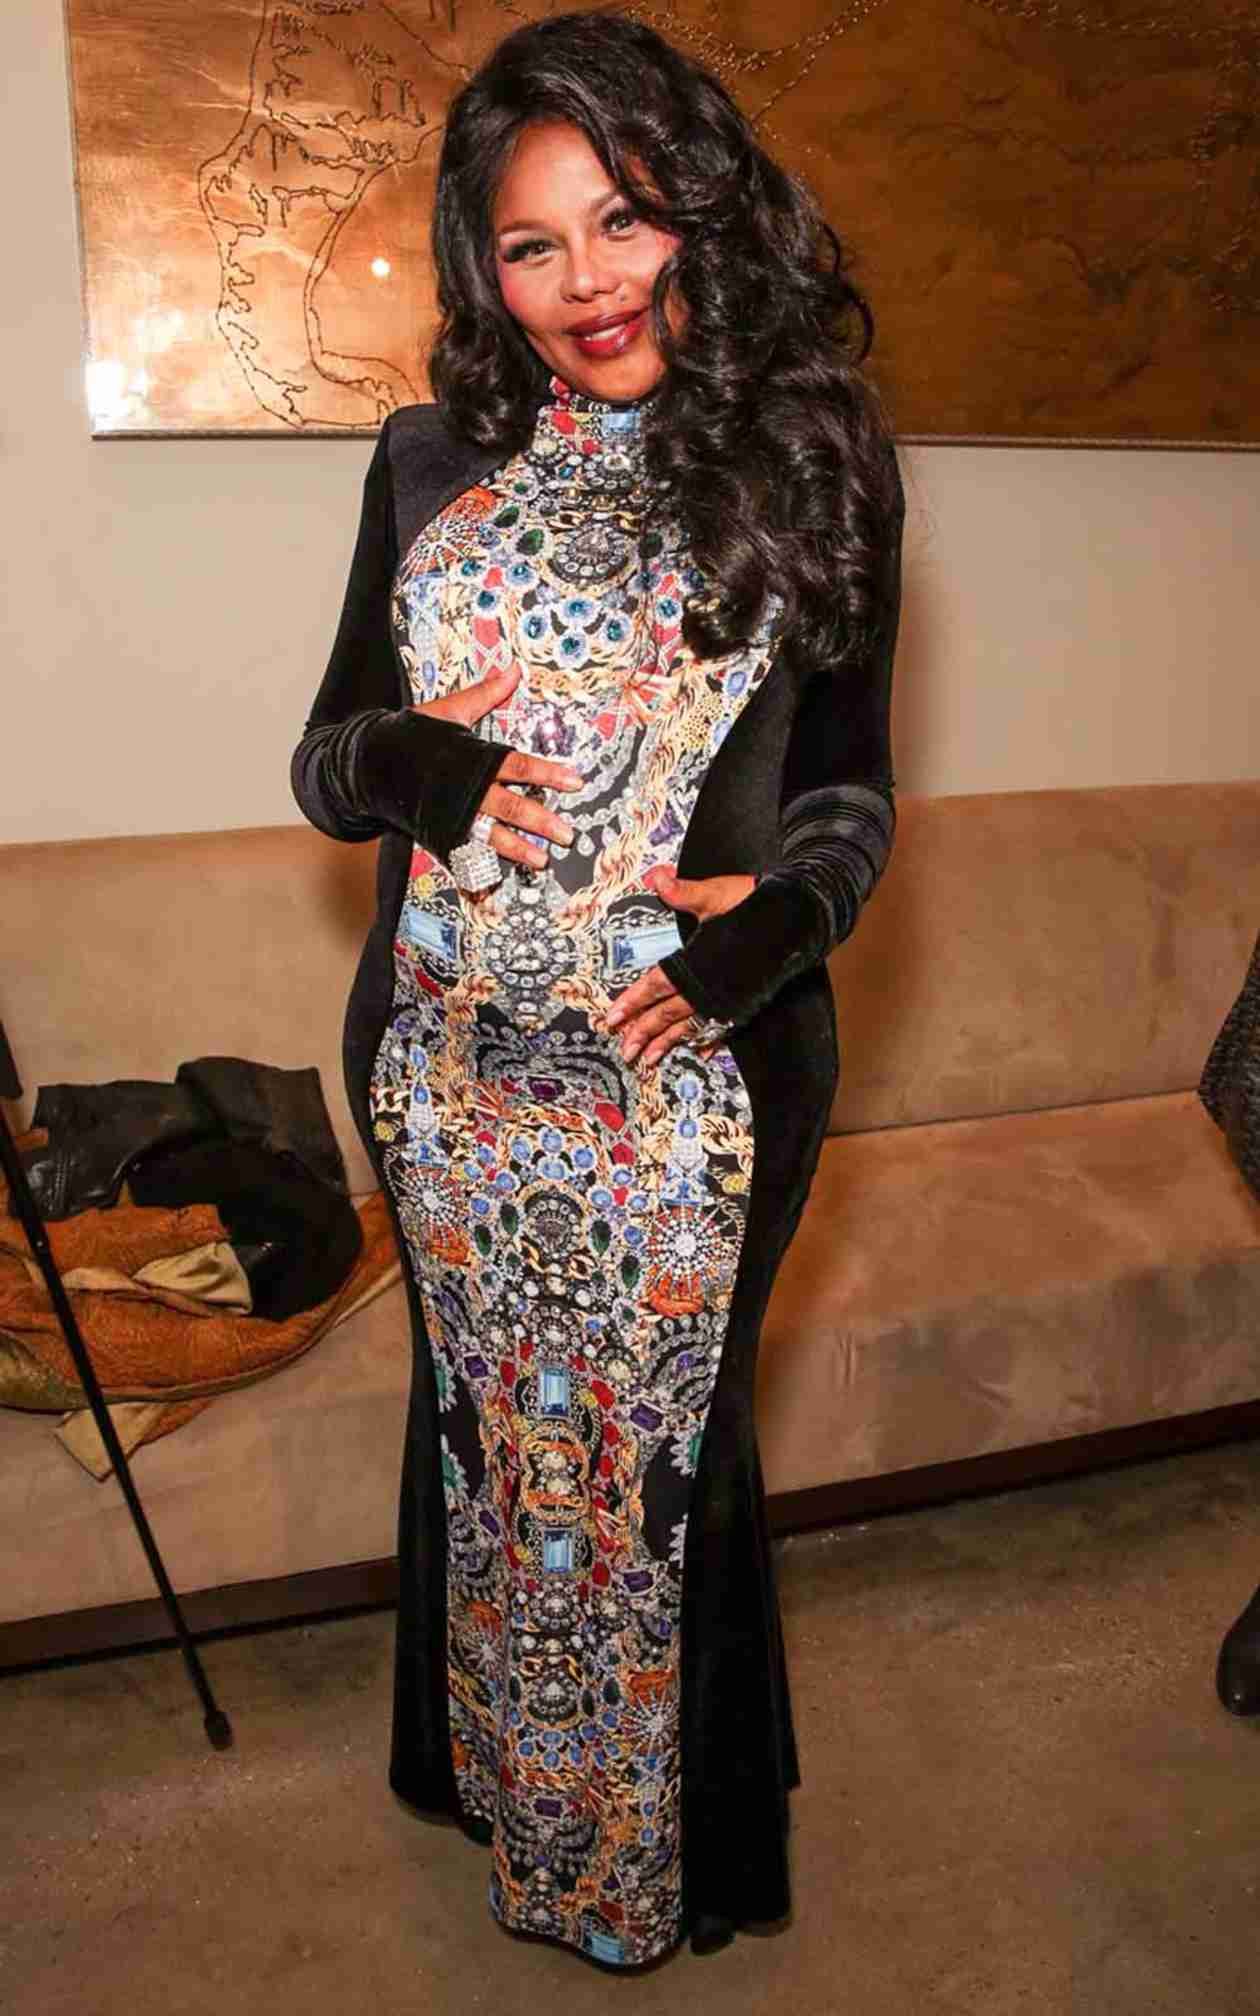 Lil' Kim Attends Her Baby Shower With Her Baby Daddy — Who Is He? (PHOTO)